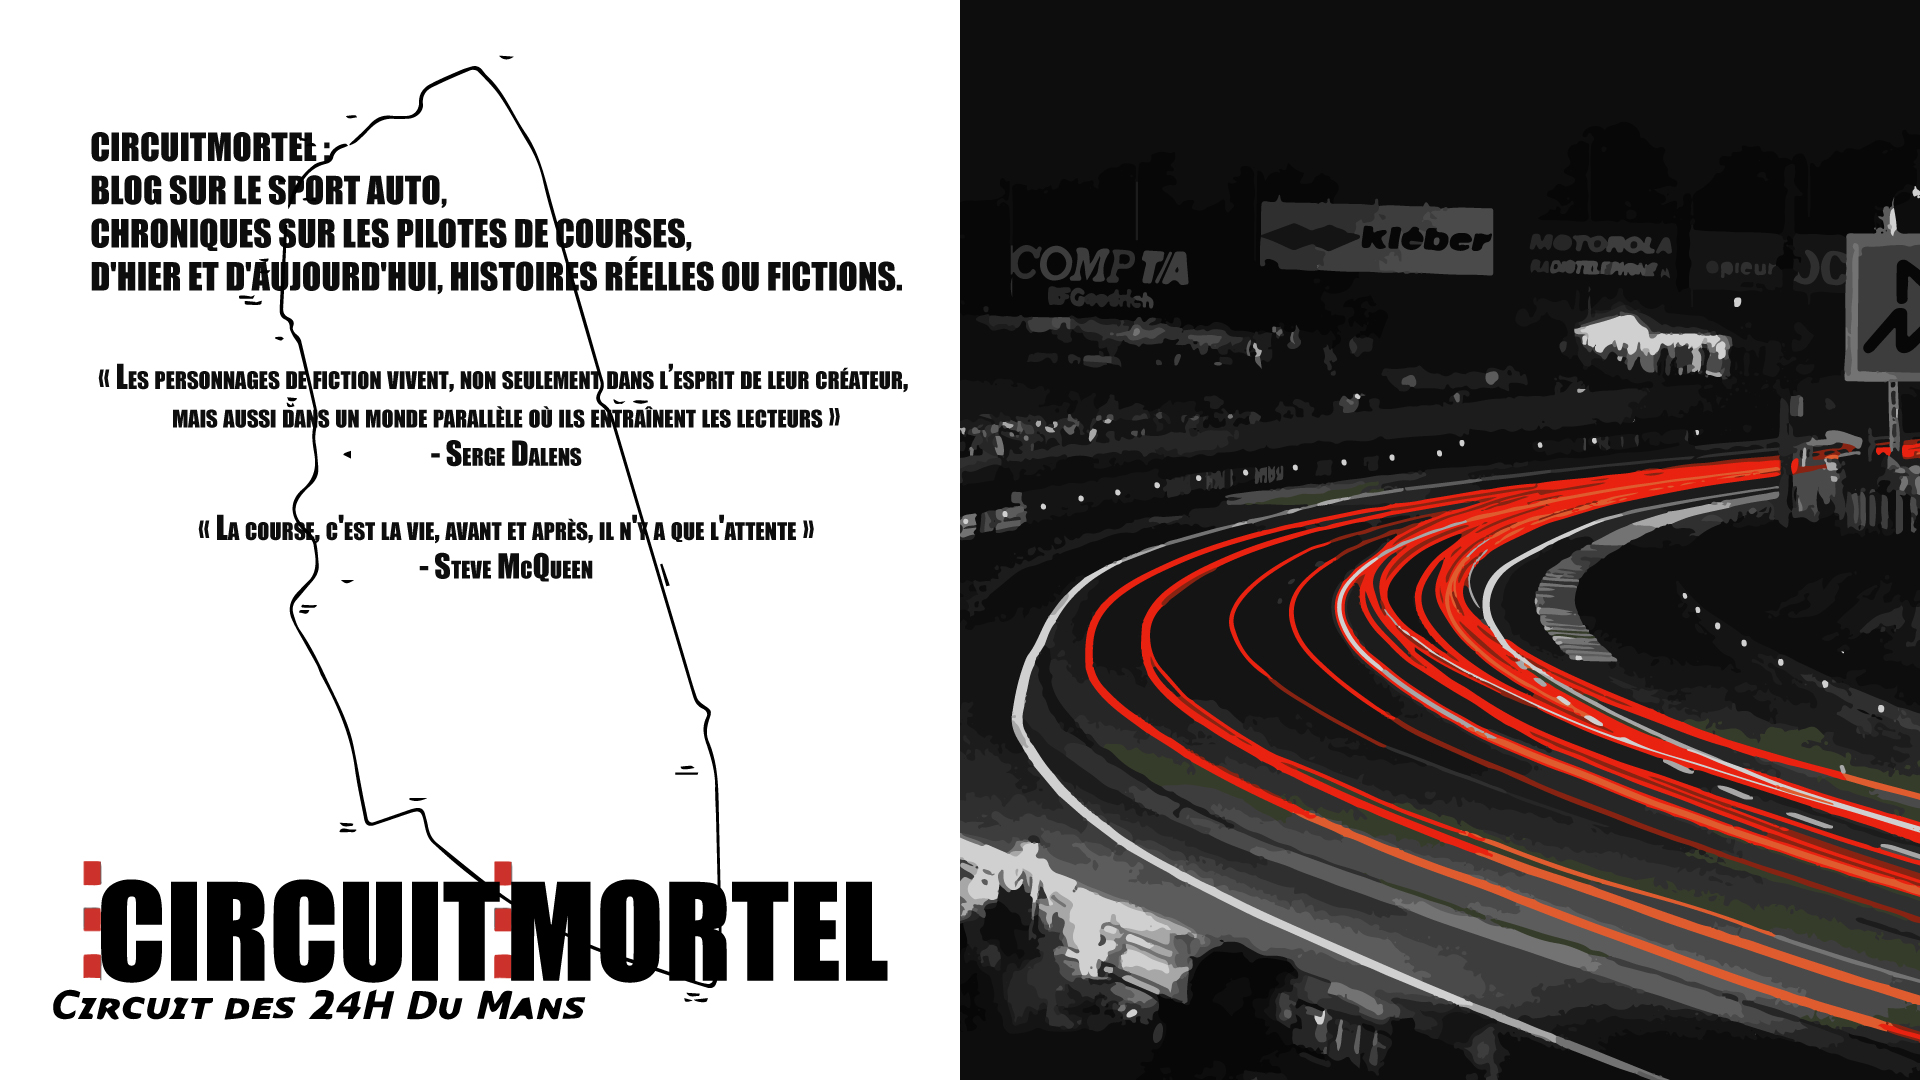 CIRCUITMORTEL - wallpaper 2015 - start